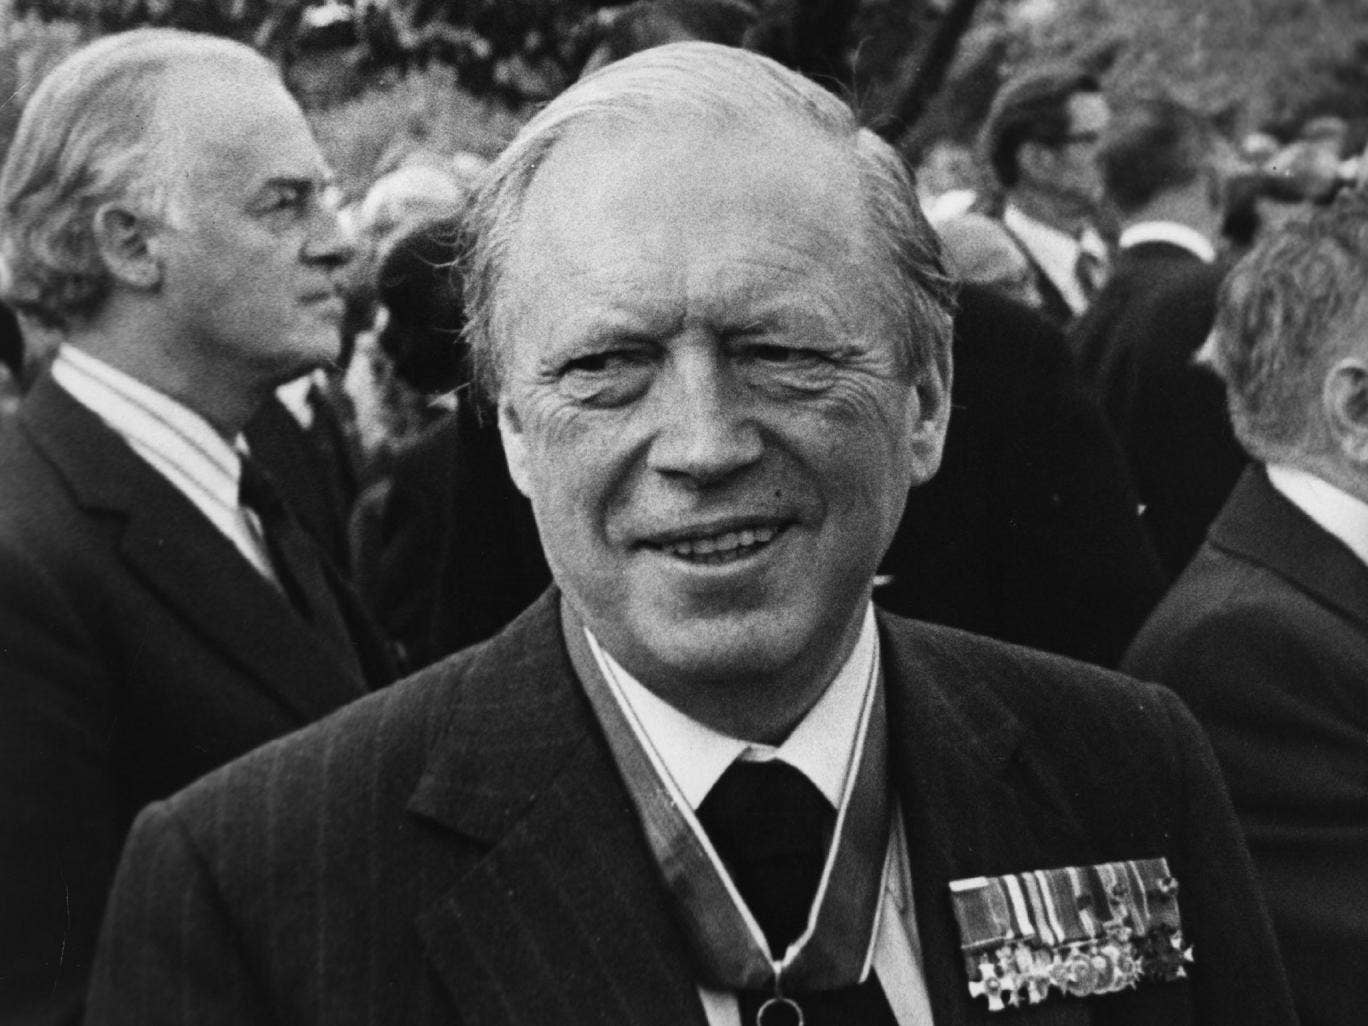 Airey Neave died after an attack on the House of Commons in 1979